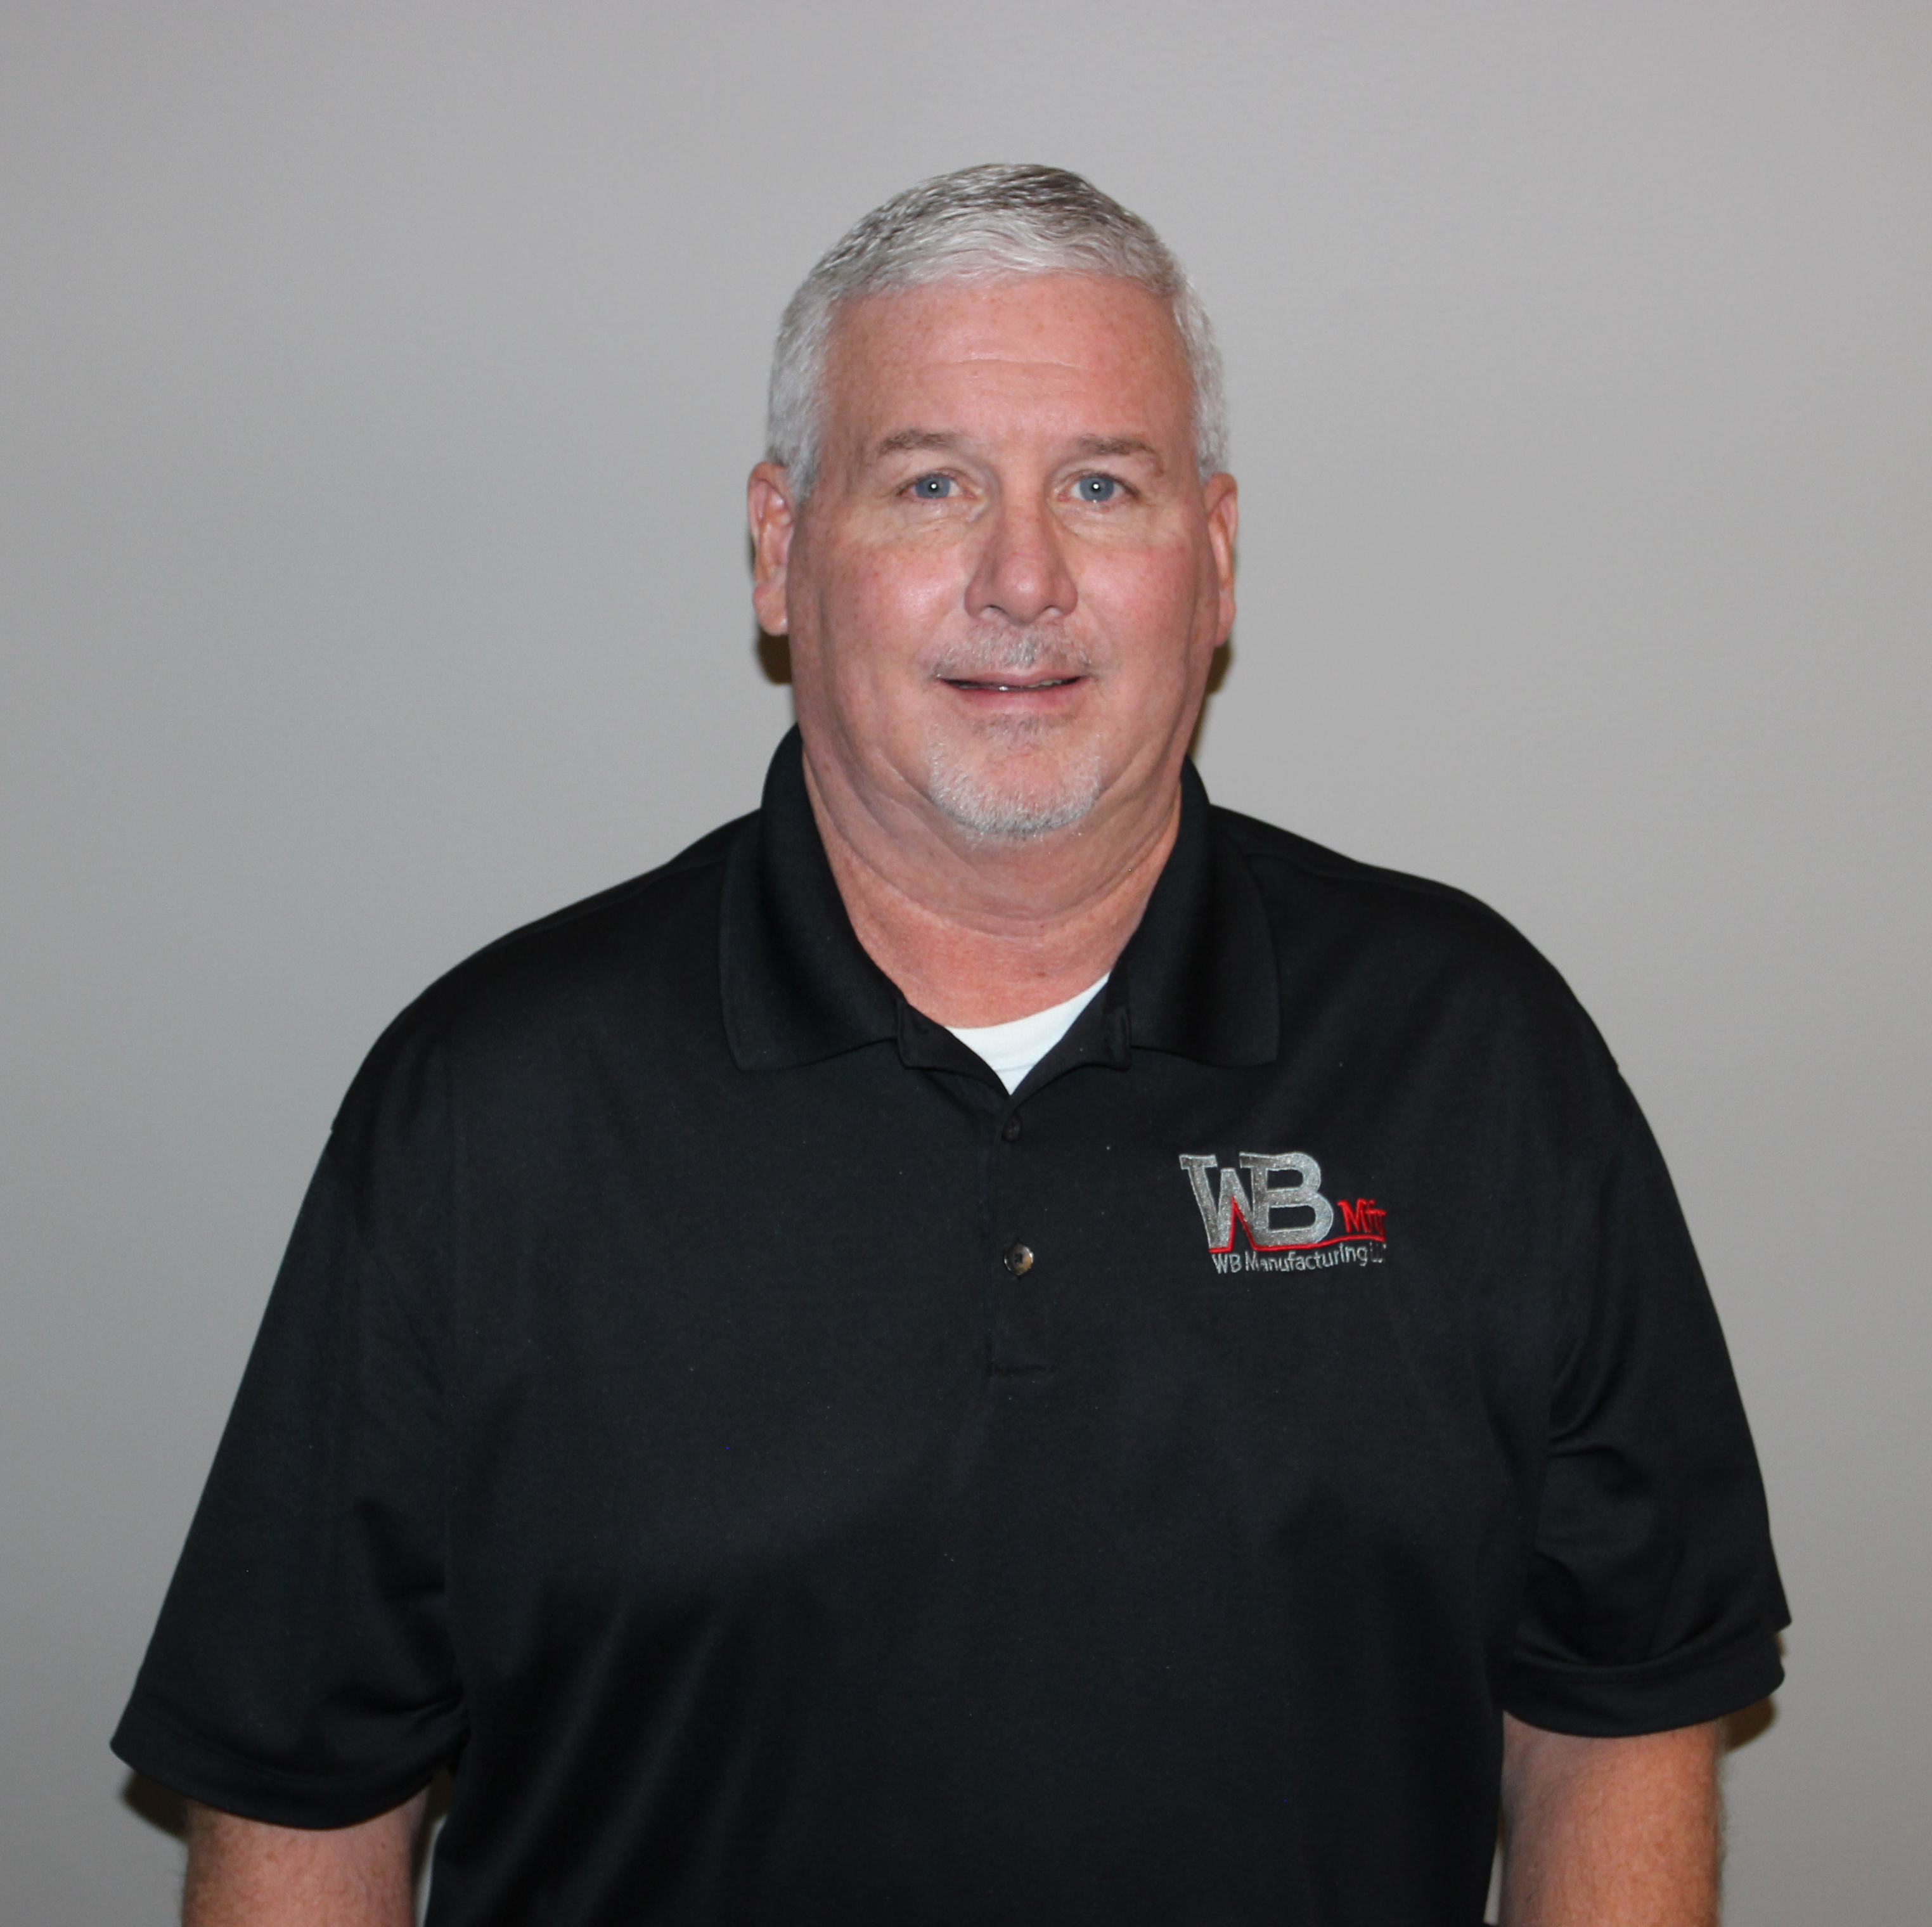 Mike Schmitt - Regional Sales Manager, Midwest